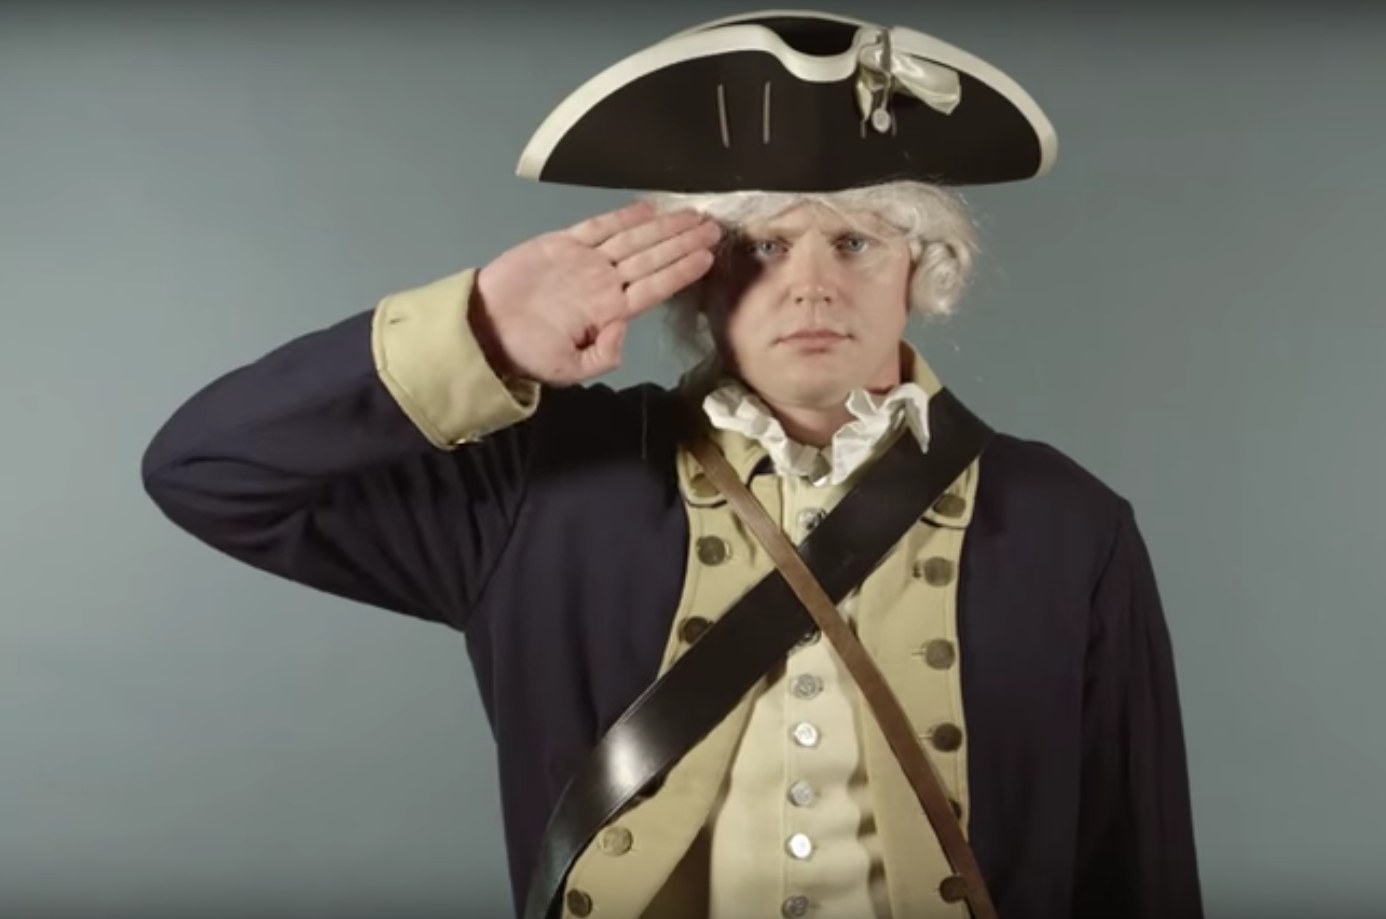 Watch 240 Years Of The U.S. Army Uniform Evolve In This Quick Video Featured